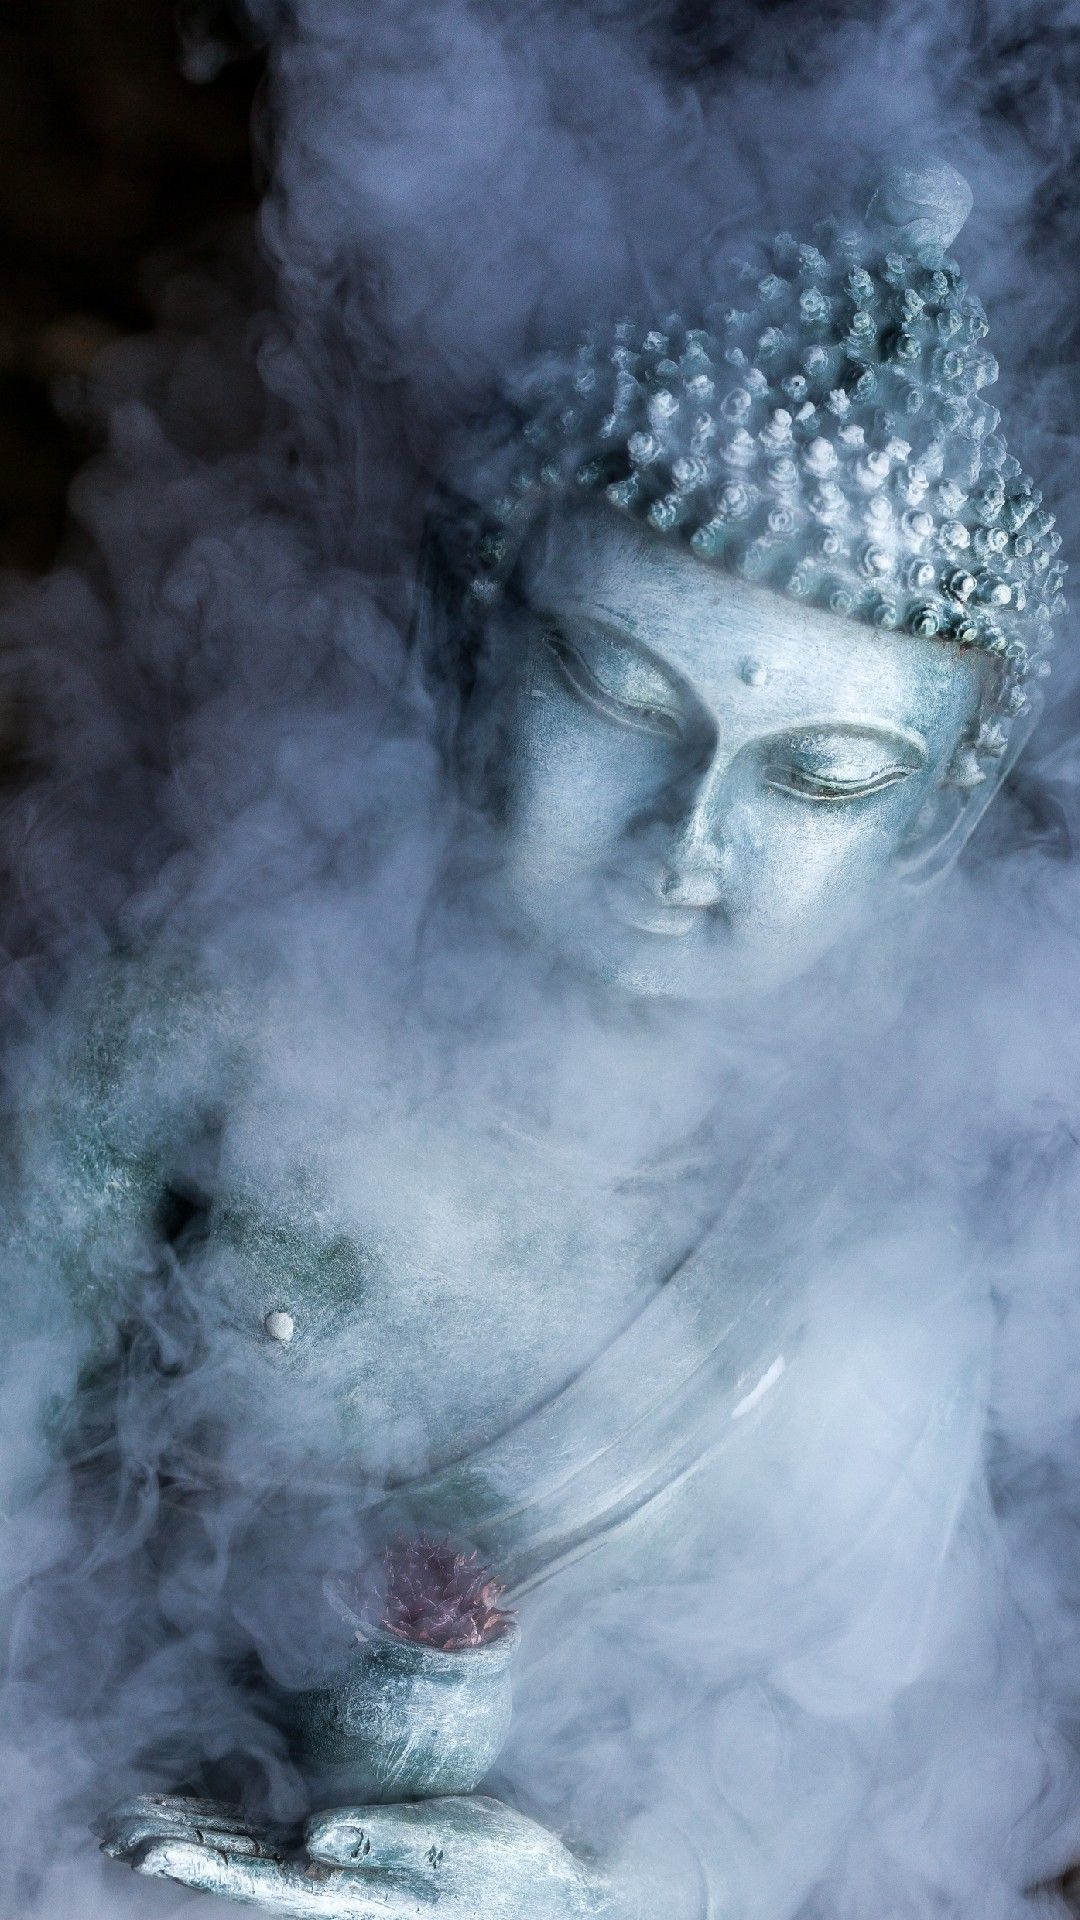 Buddha In Smoke Background Phone Wallpaper And Lockscreen Hd Check More At Https Phonewallp Com Buddha Wallpaper Iphone Buddhism Wallpaper Buddha Background